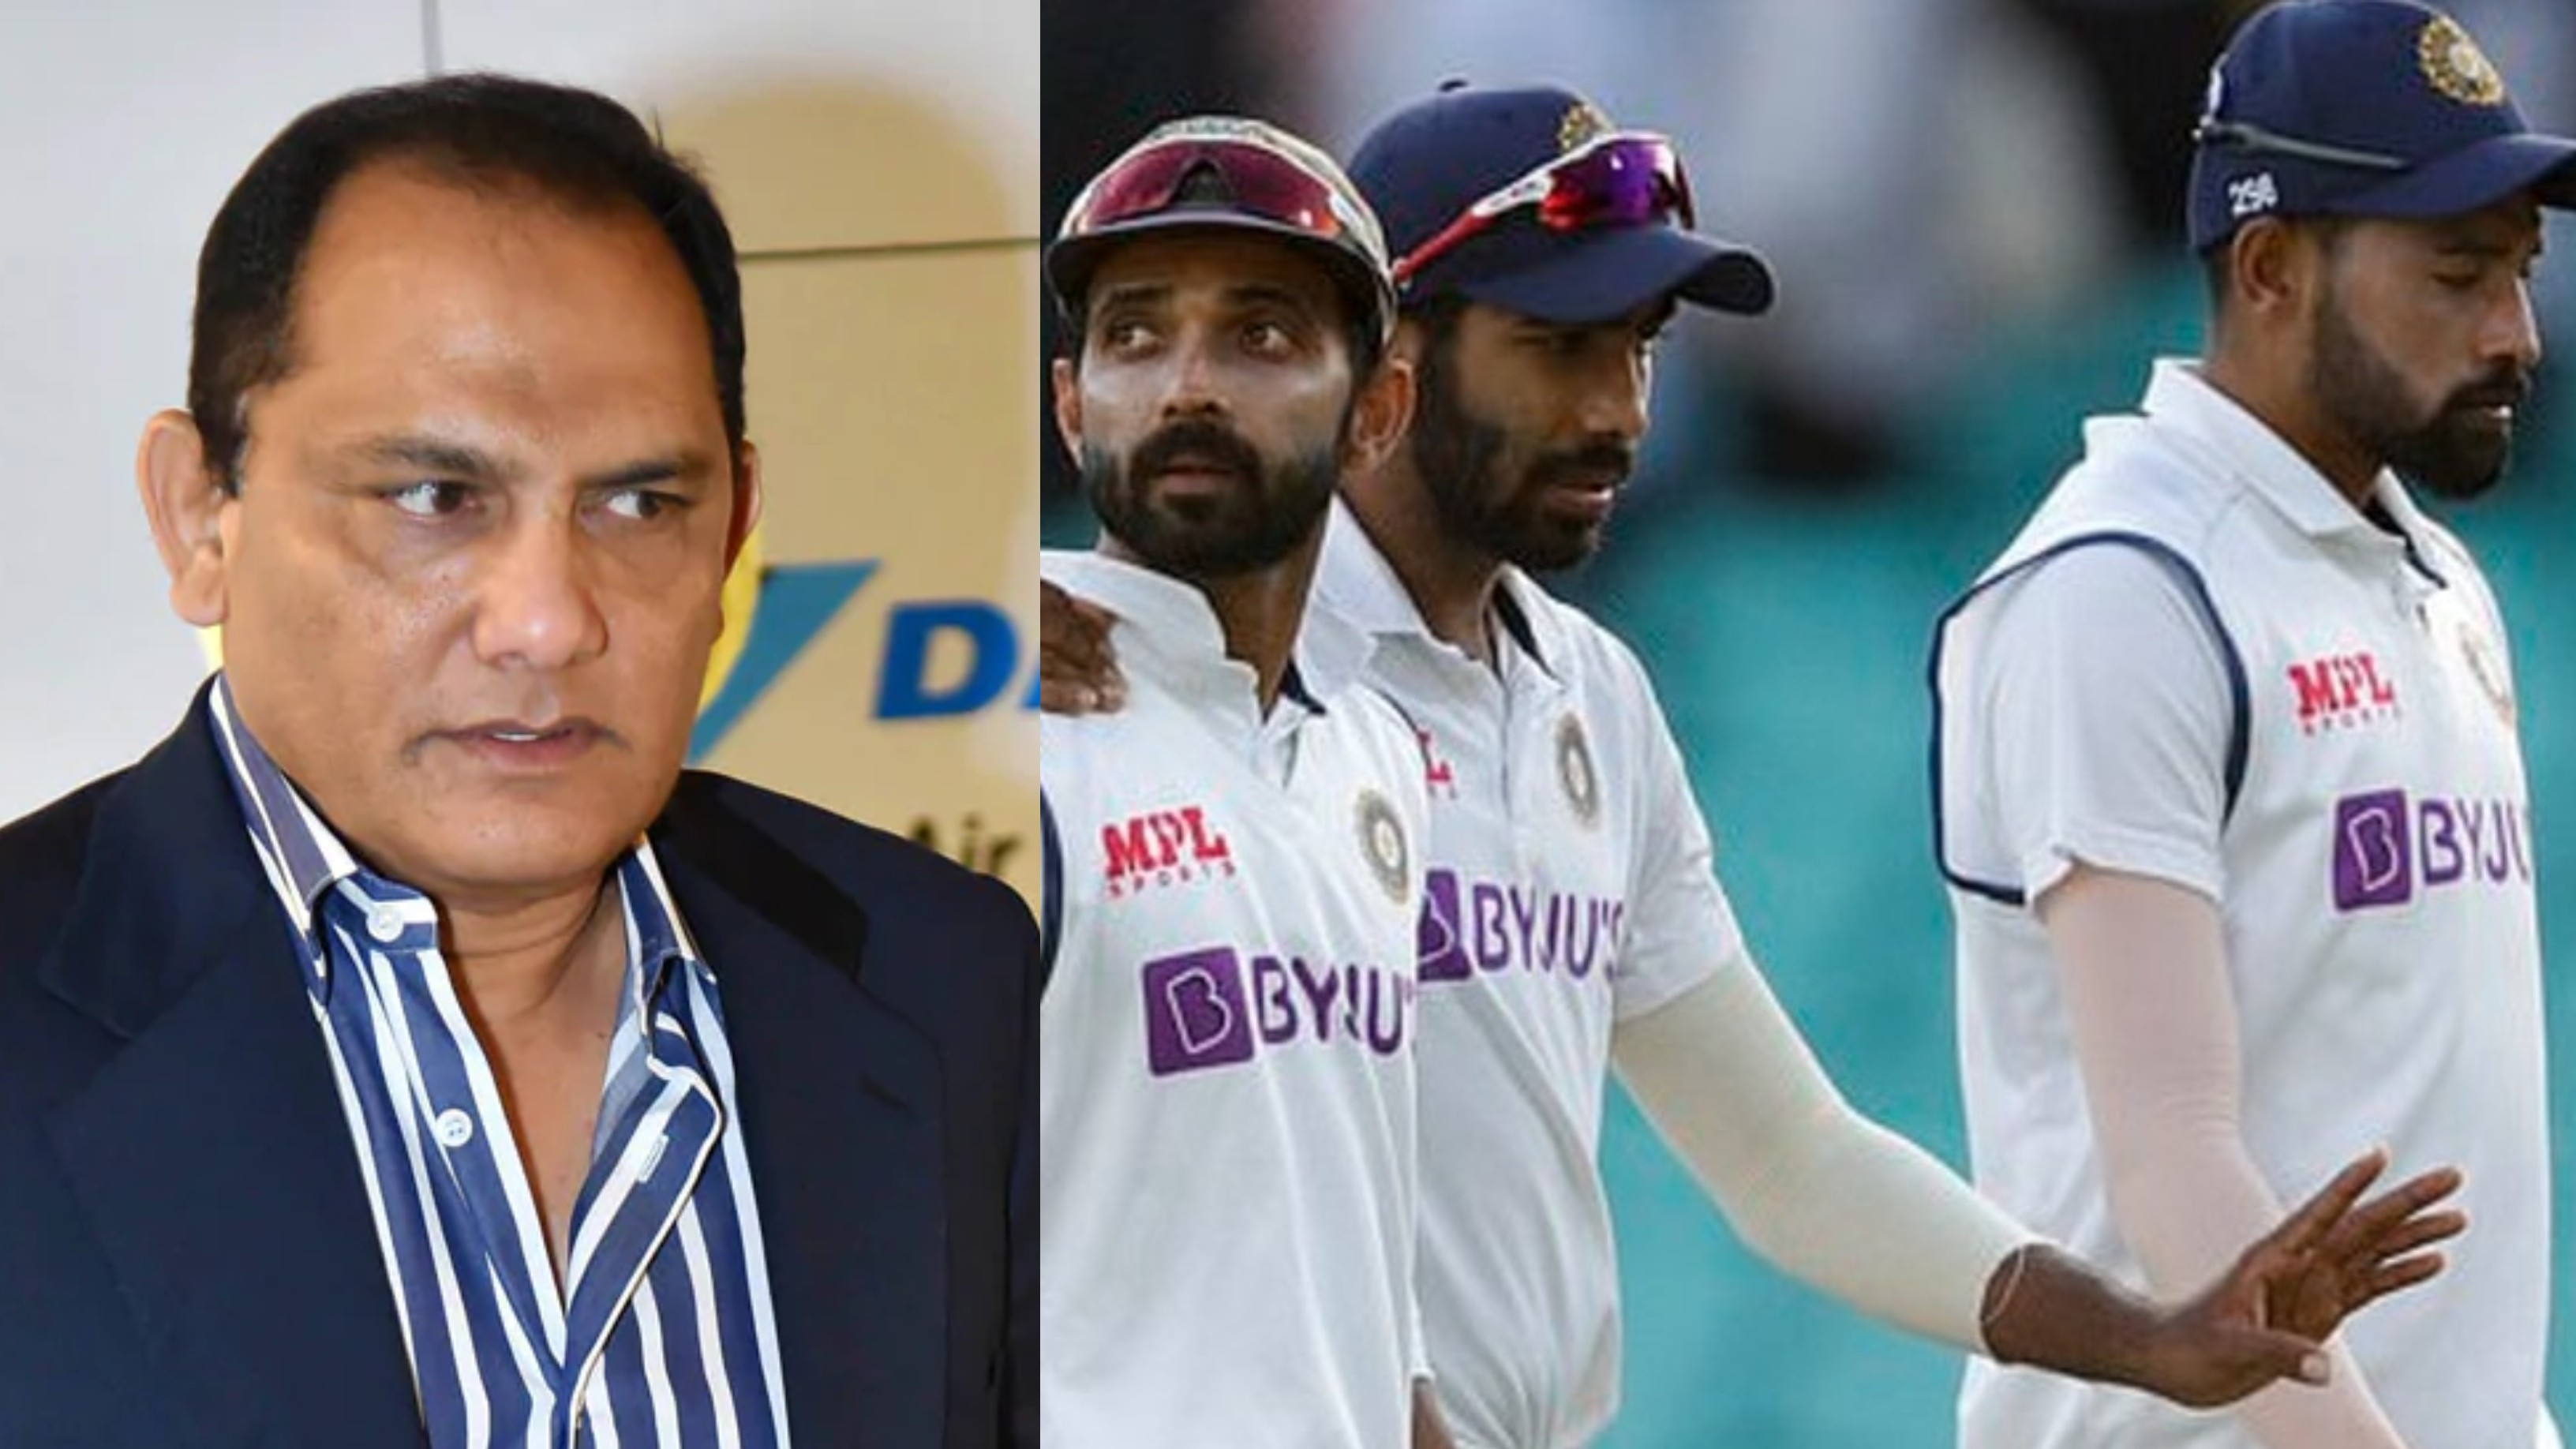 AUS v IND 2020-21: Racial abuse on Indian players becoming a regular affair in Australia, says Mohammad Azharuddin